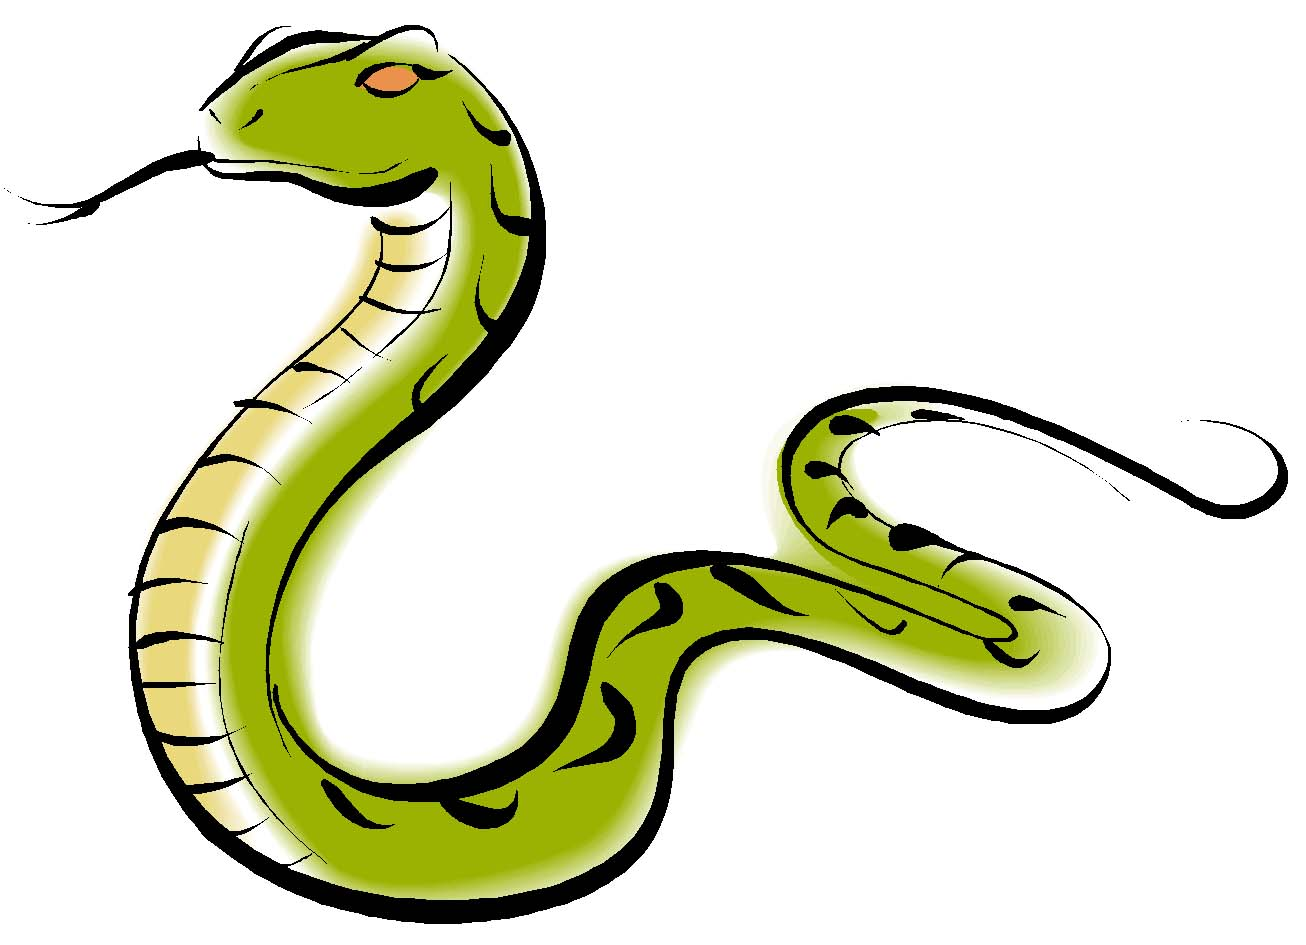 Scary snake clipart.